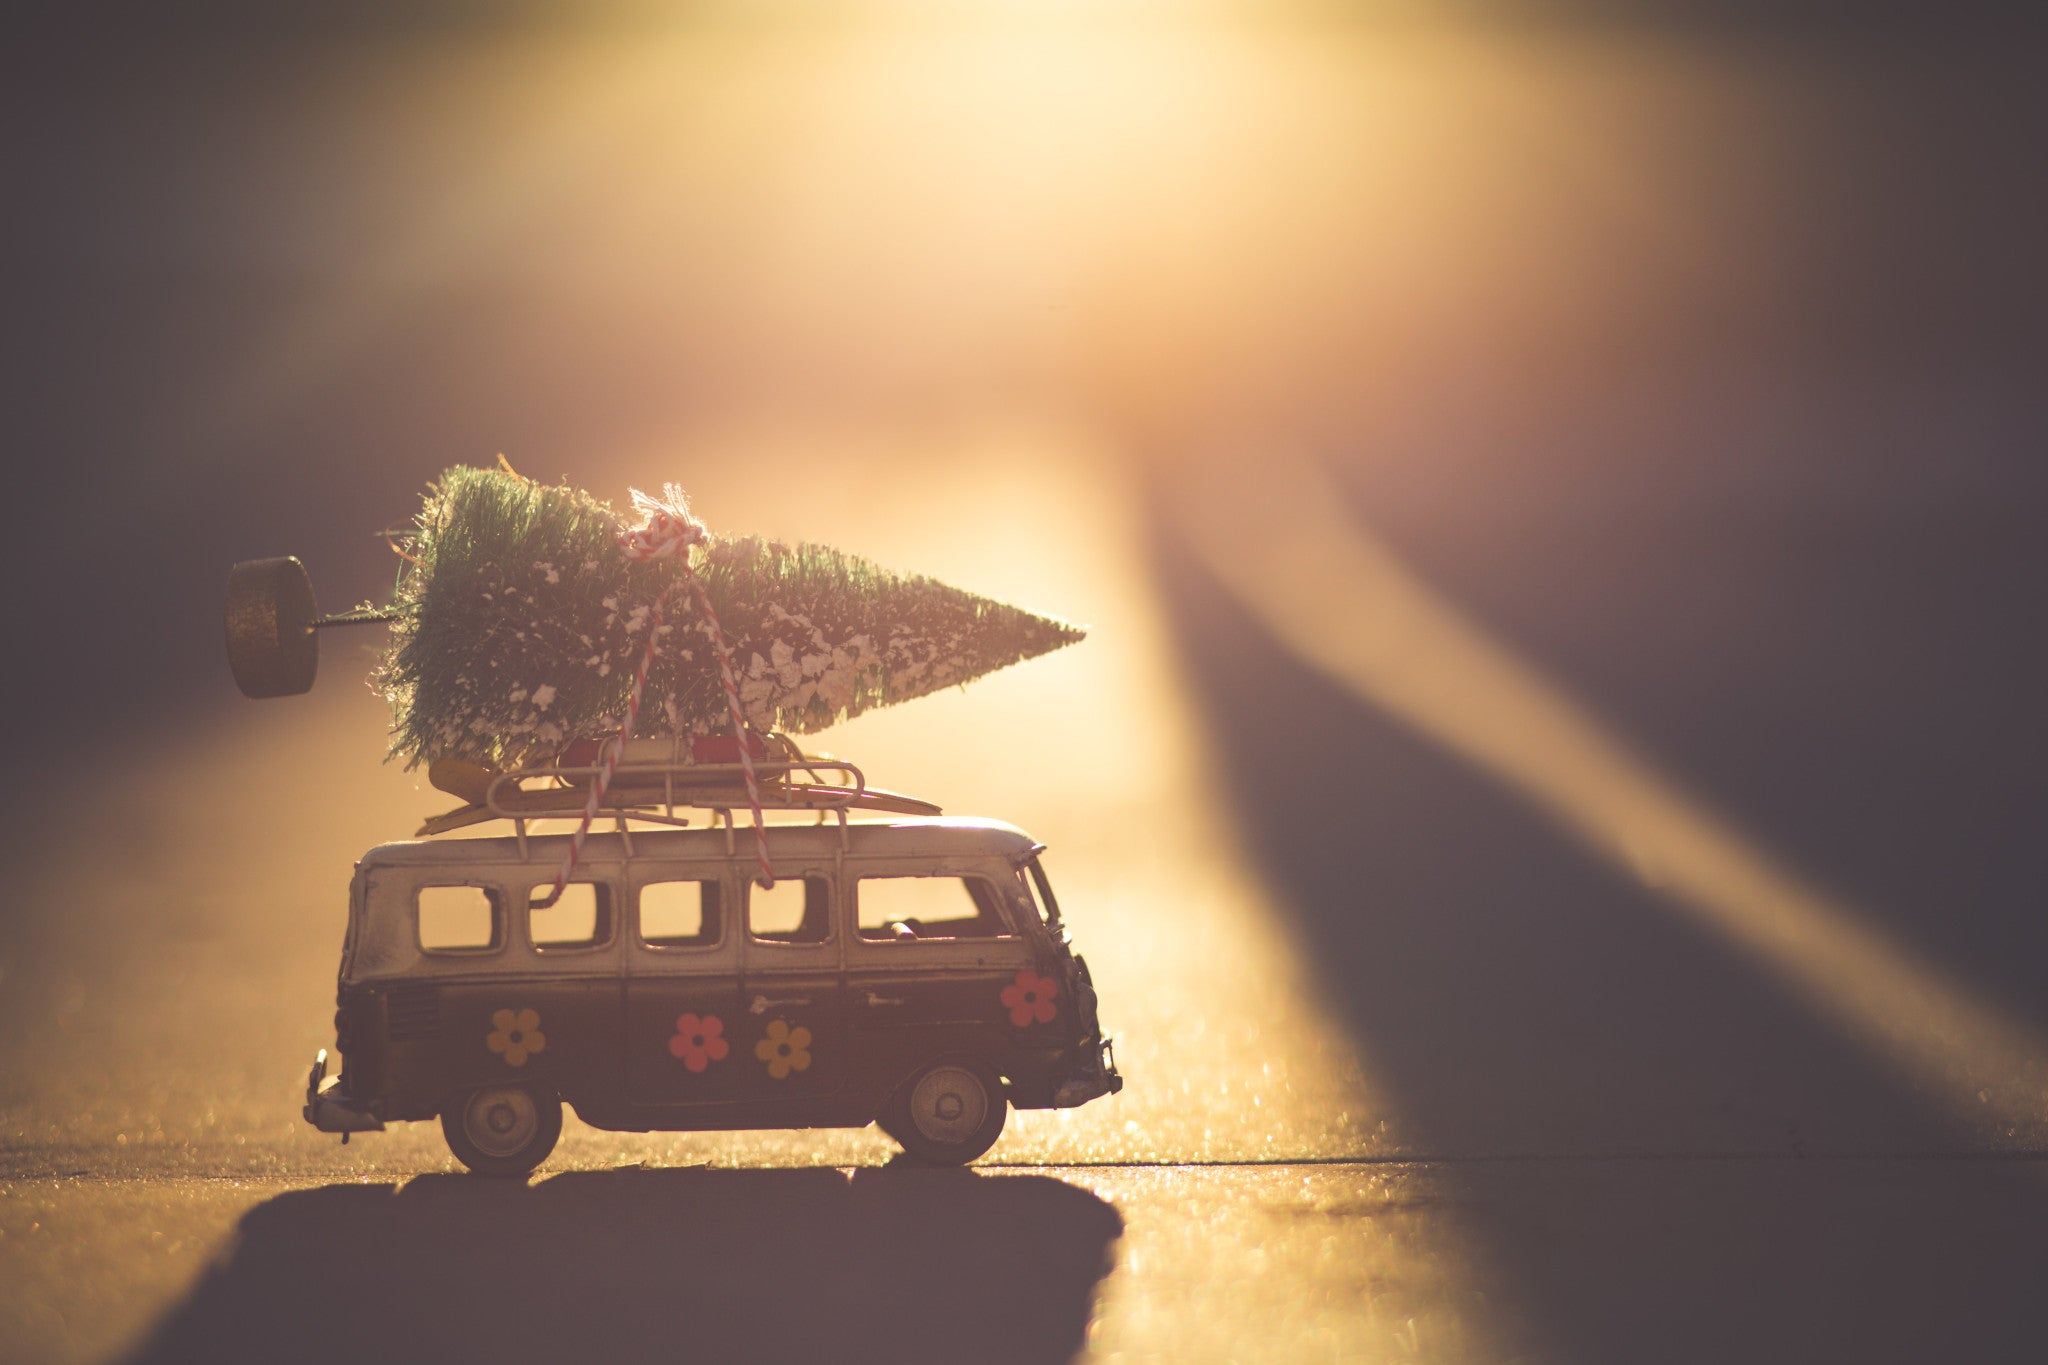 Surfer van with a christmas tree on the roof